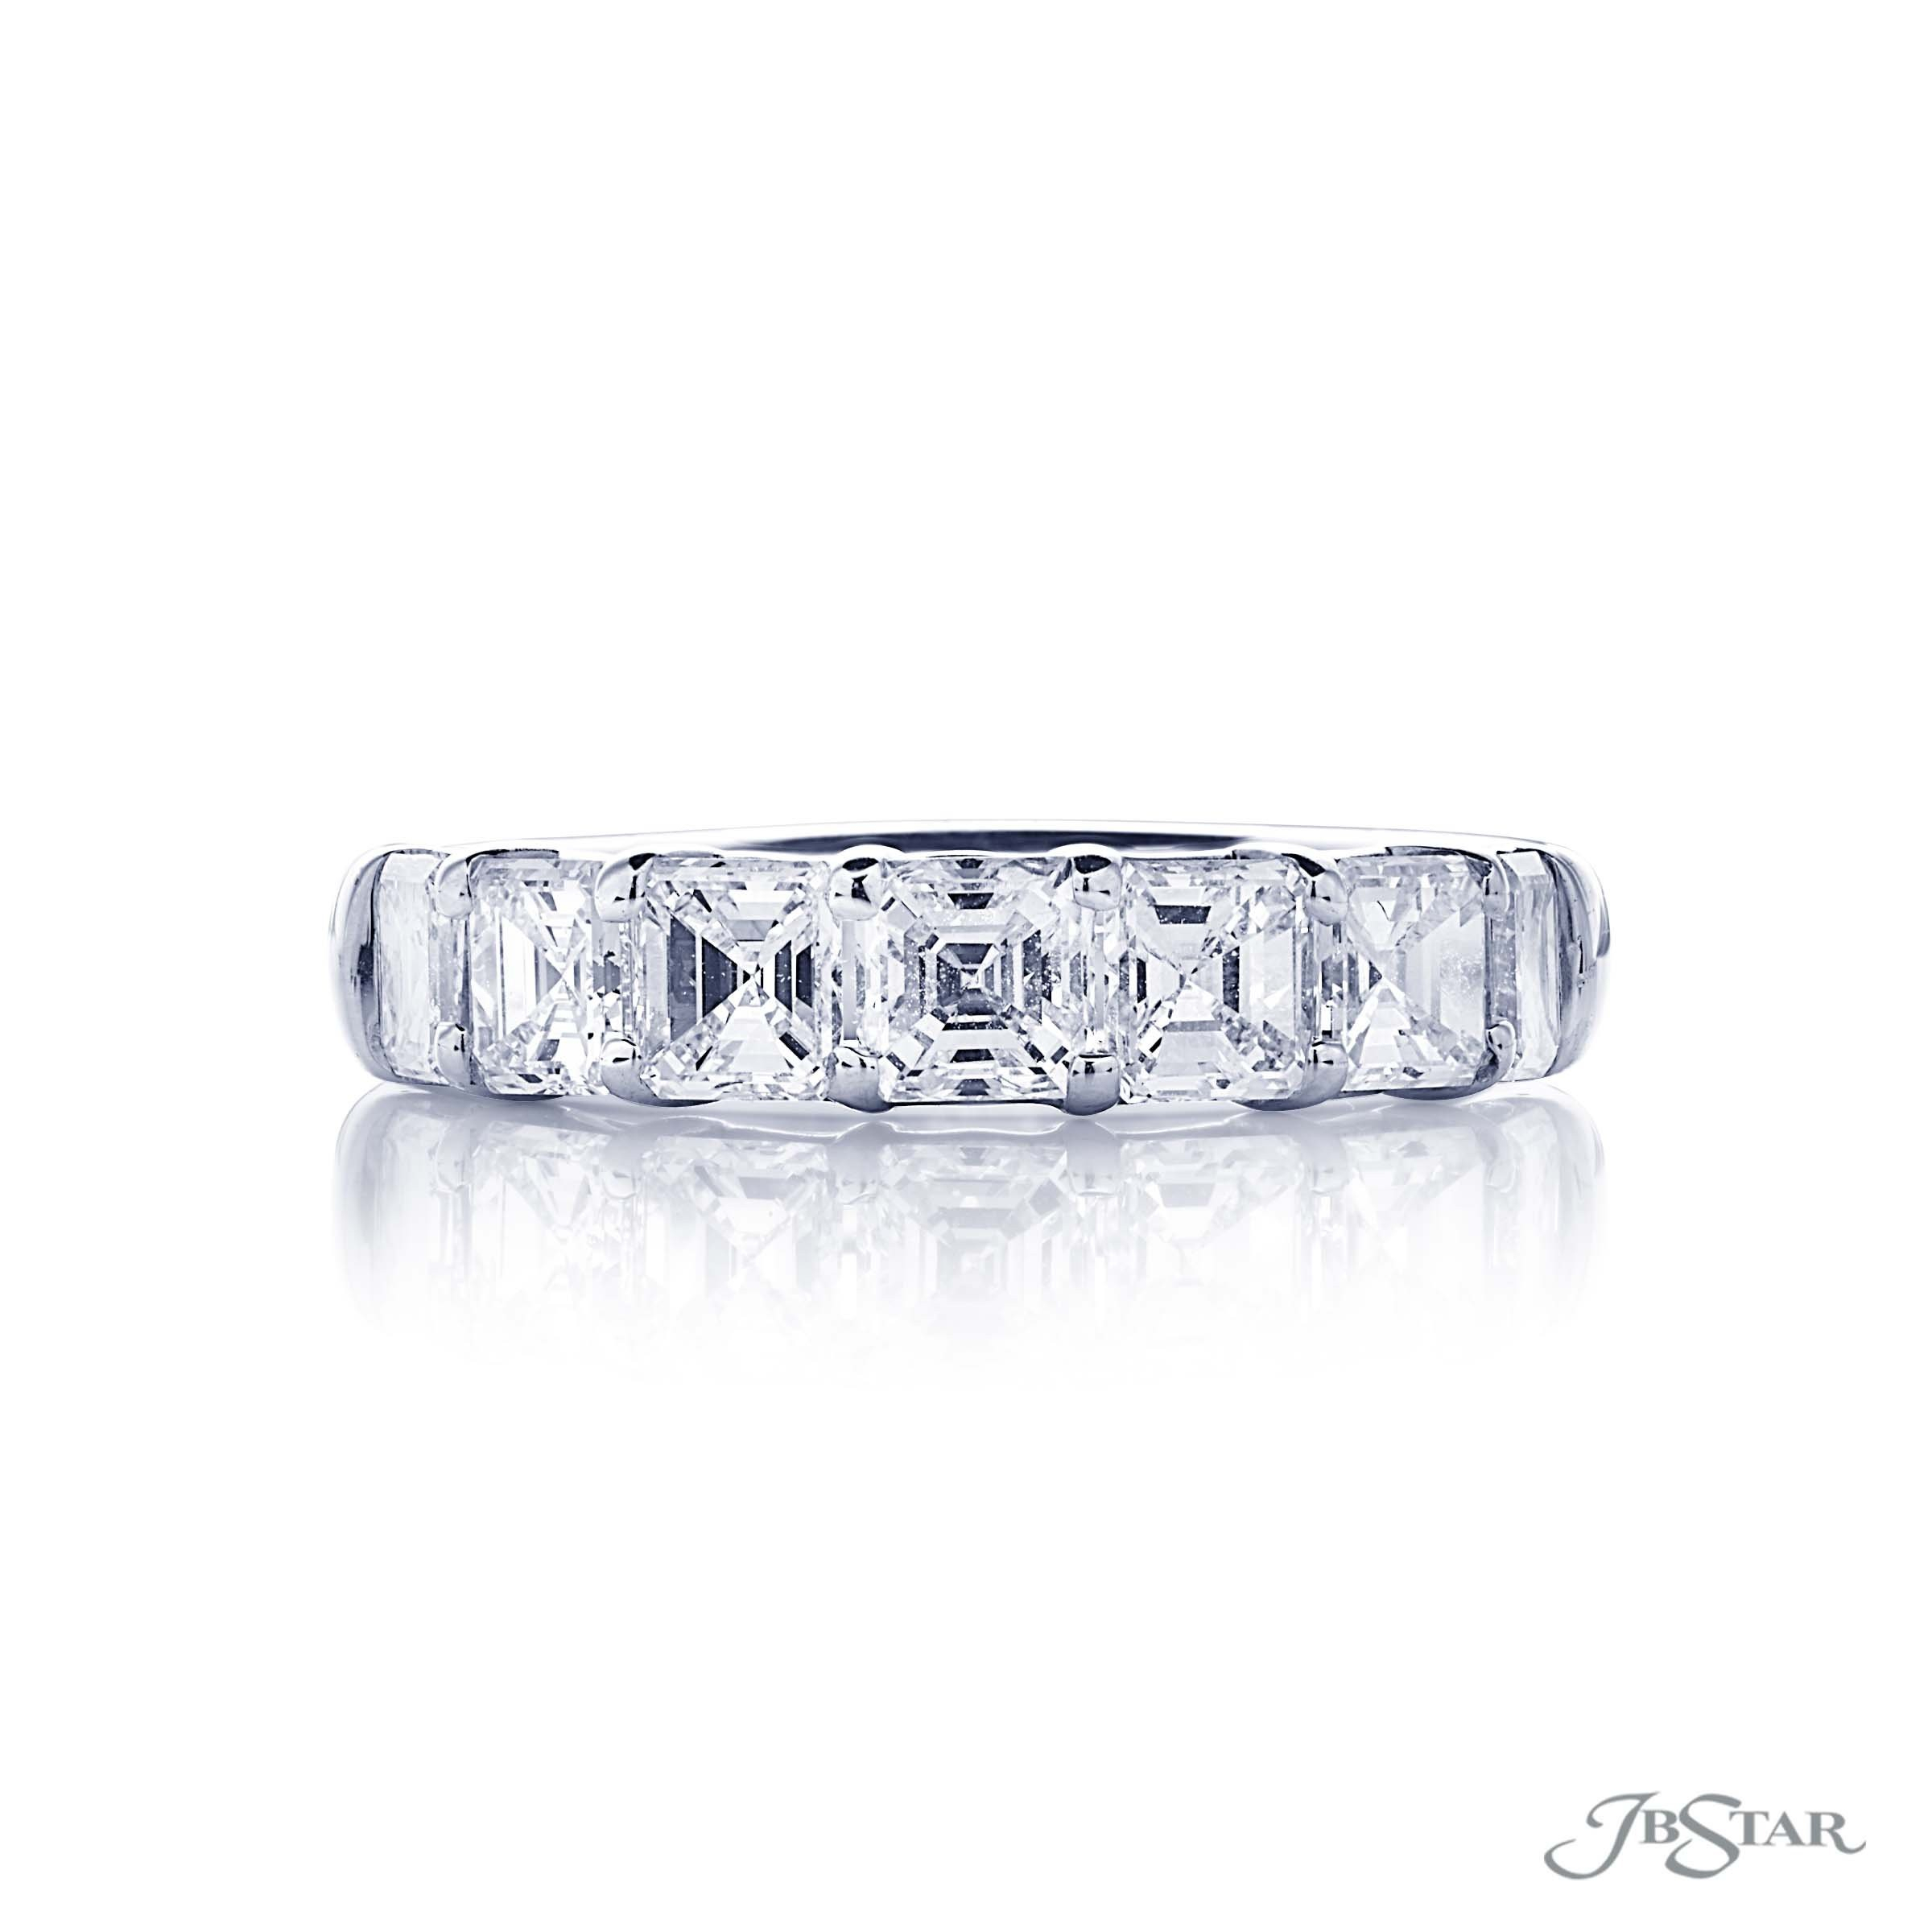 Dazzling Diamond Wedding Band Featuring 7 Square Emerald Cut Throughout 2017 Prong Set Emerald Cut Diamond Wedding Bands (View 5 of 25)